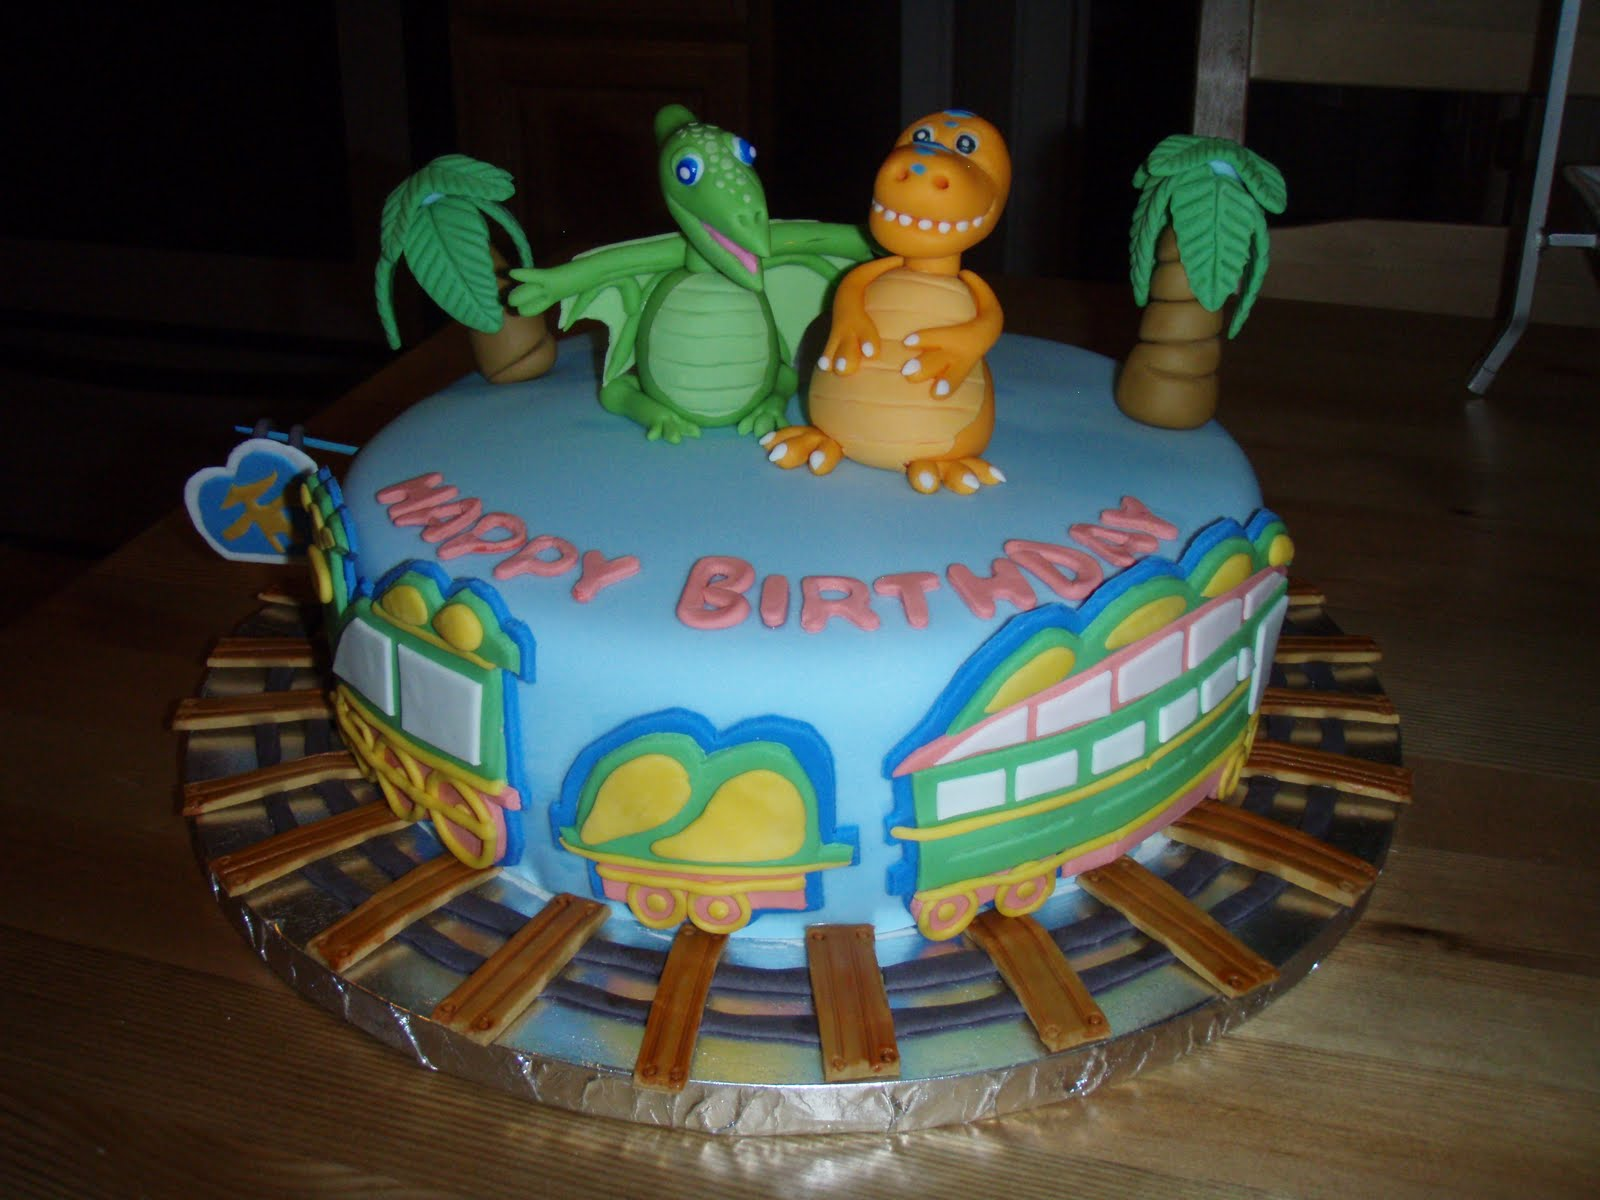 Dinosaur Train Cake Images : For Batter or For Worse...: 4th Birthday Cake: Dinosaur Train